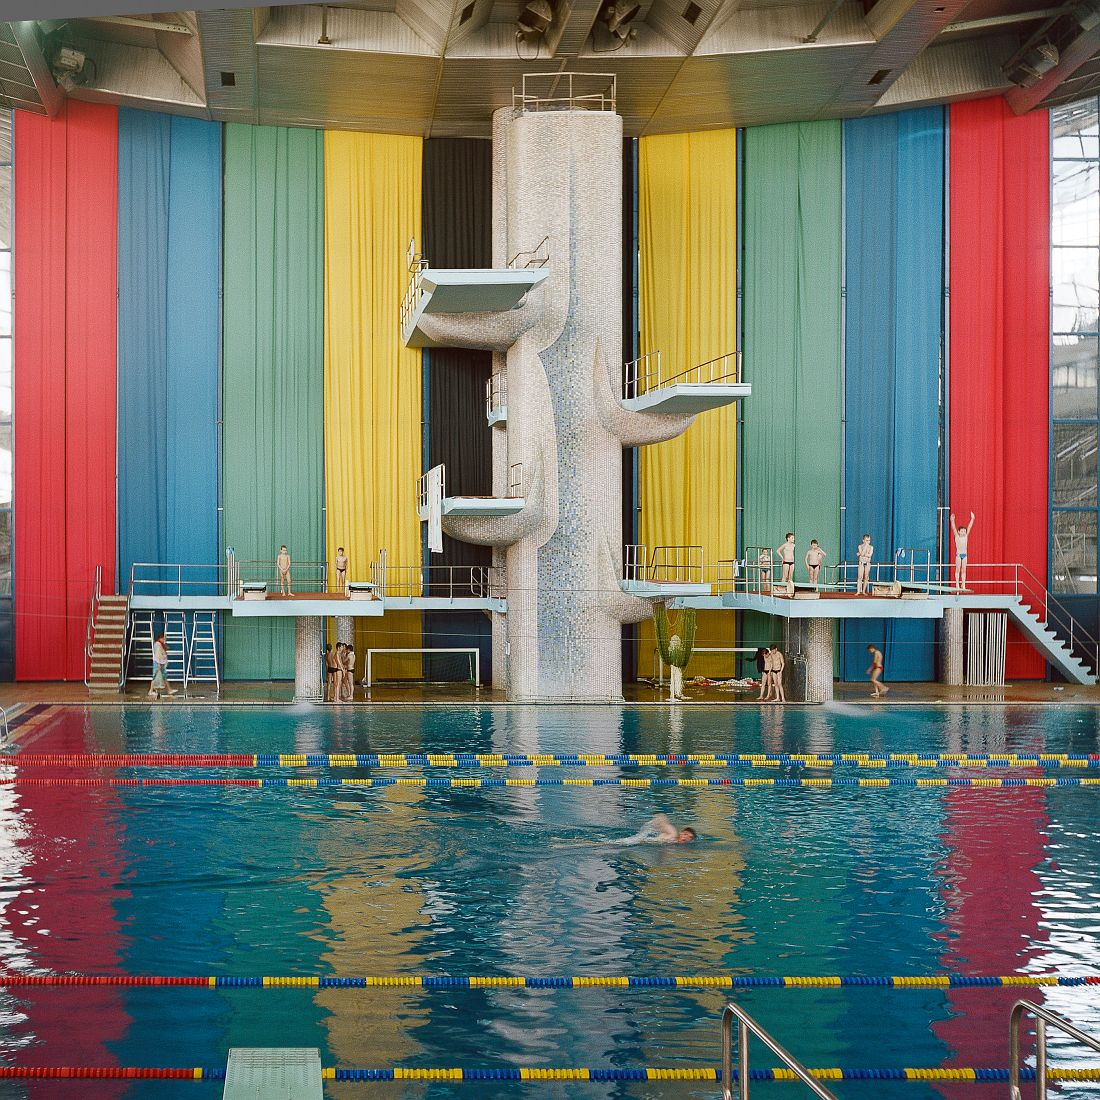 Interior of a swimming pool at Moscow Olympiysky Sports Complex. The sports complex completed in 1980 remains the largest stadium in Europe. During Moscow Olympics it hosted tournaments in 22 different disciplines. Currently, apart from being used for sports and musical venues, it hosts offices, bars, clothes market.